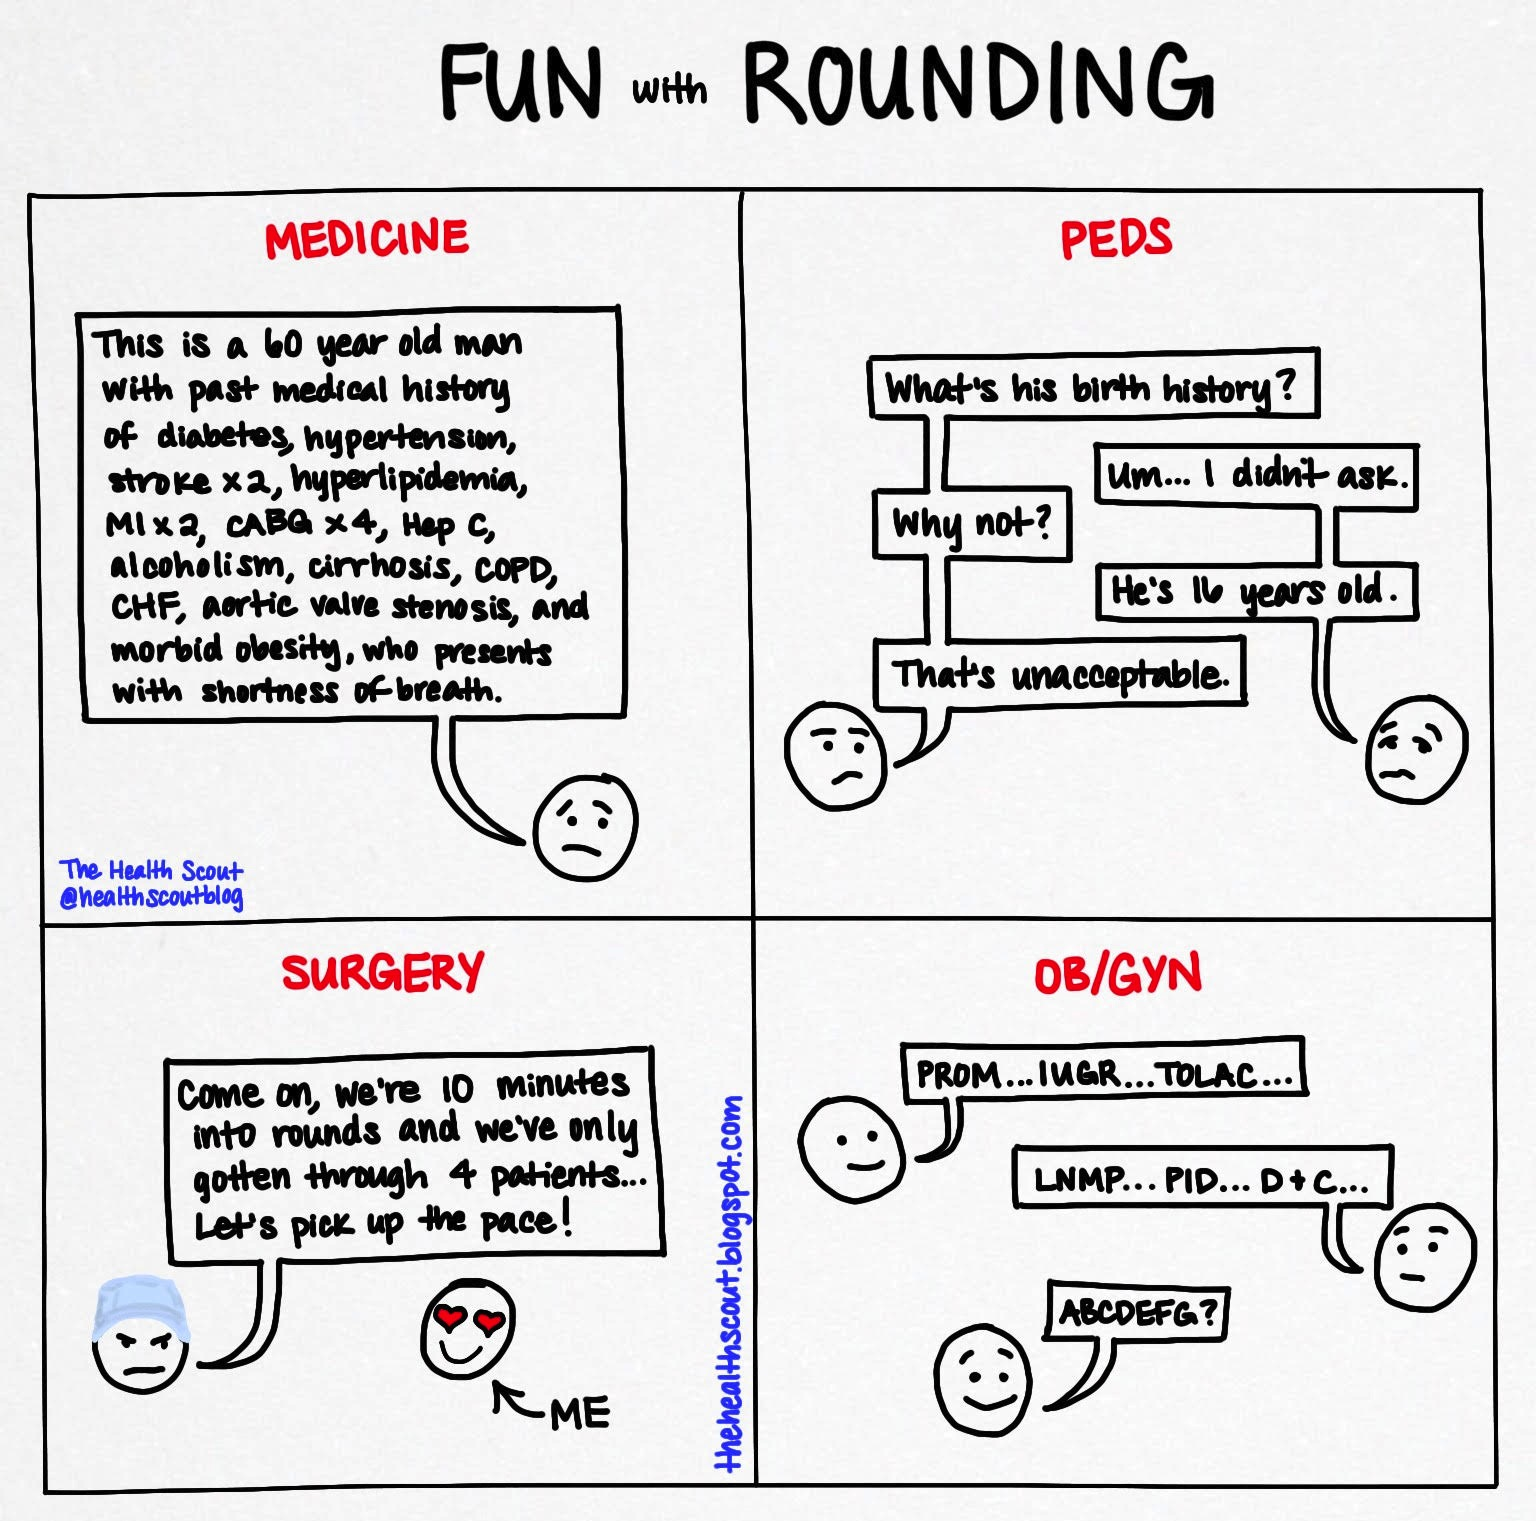 The Health Scout: Fun With Rounding!